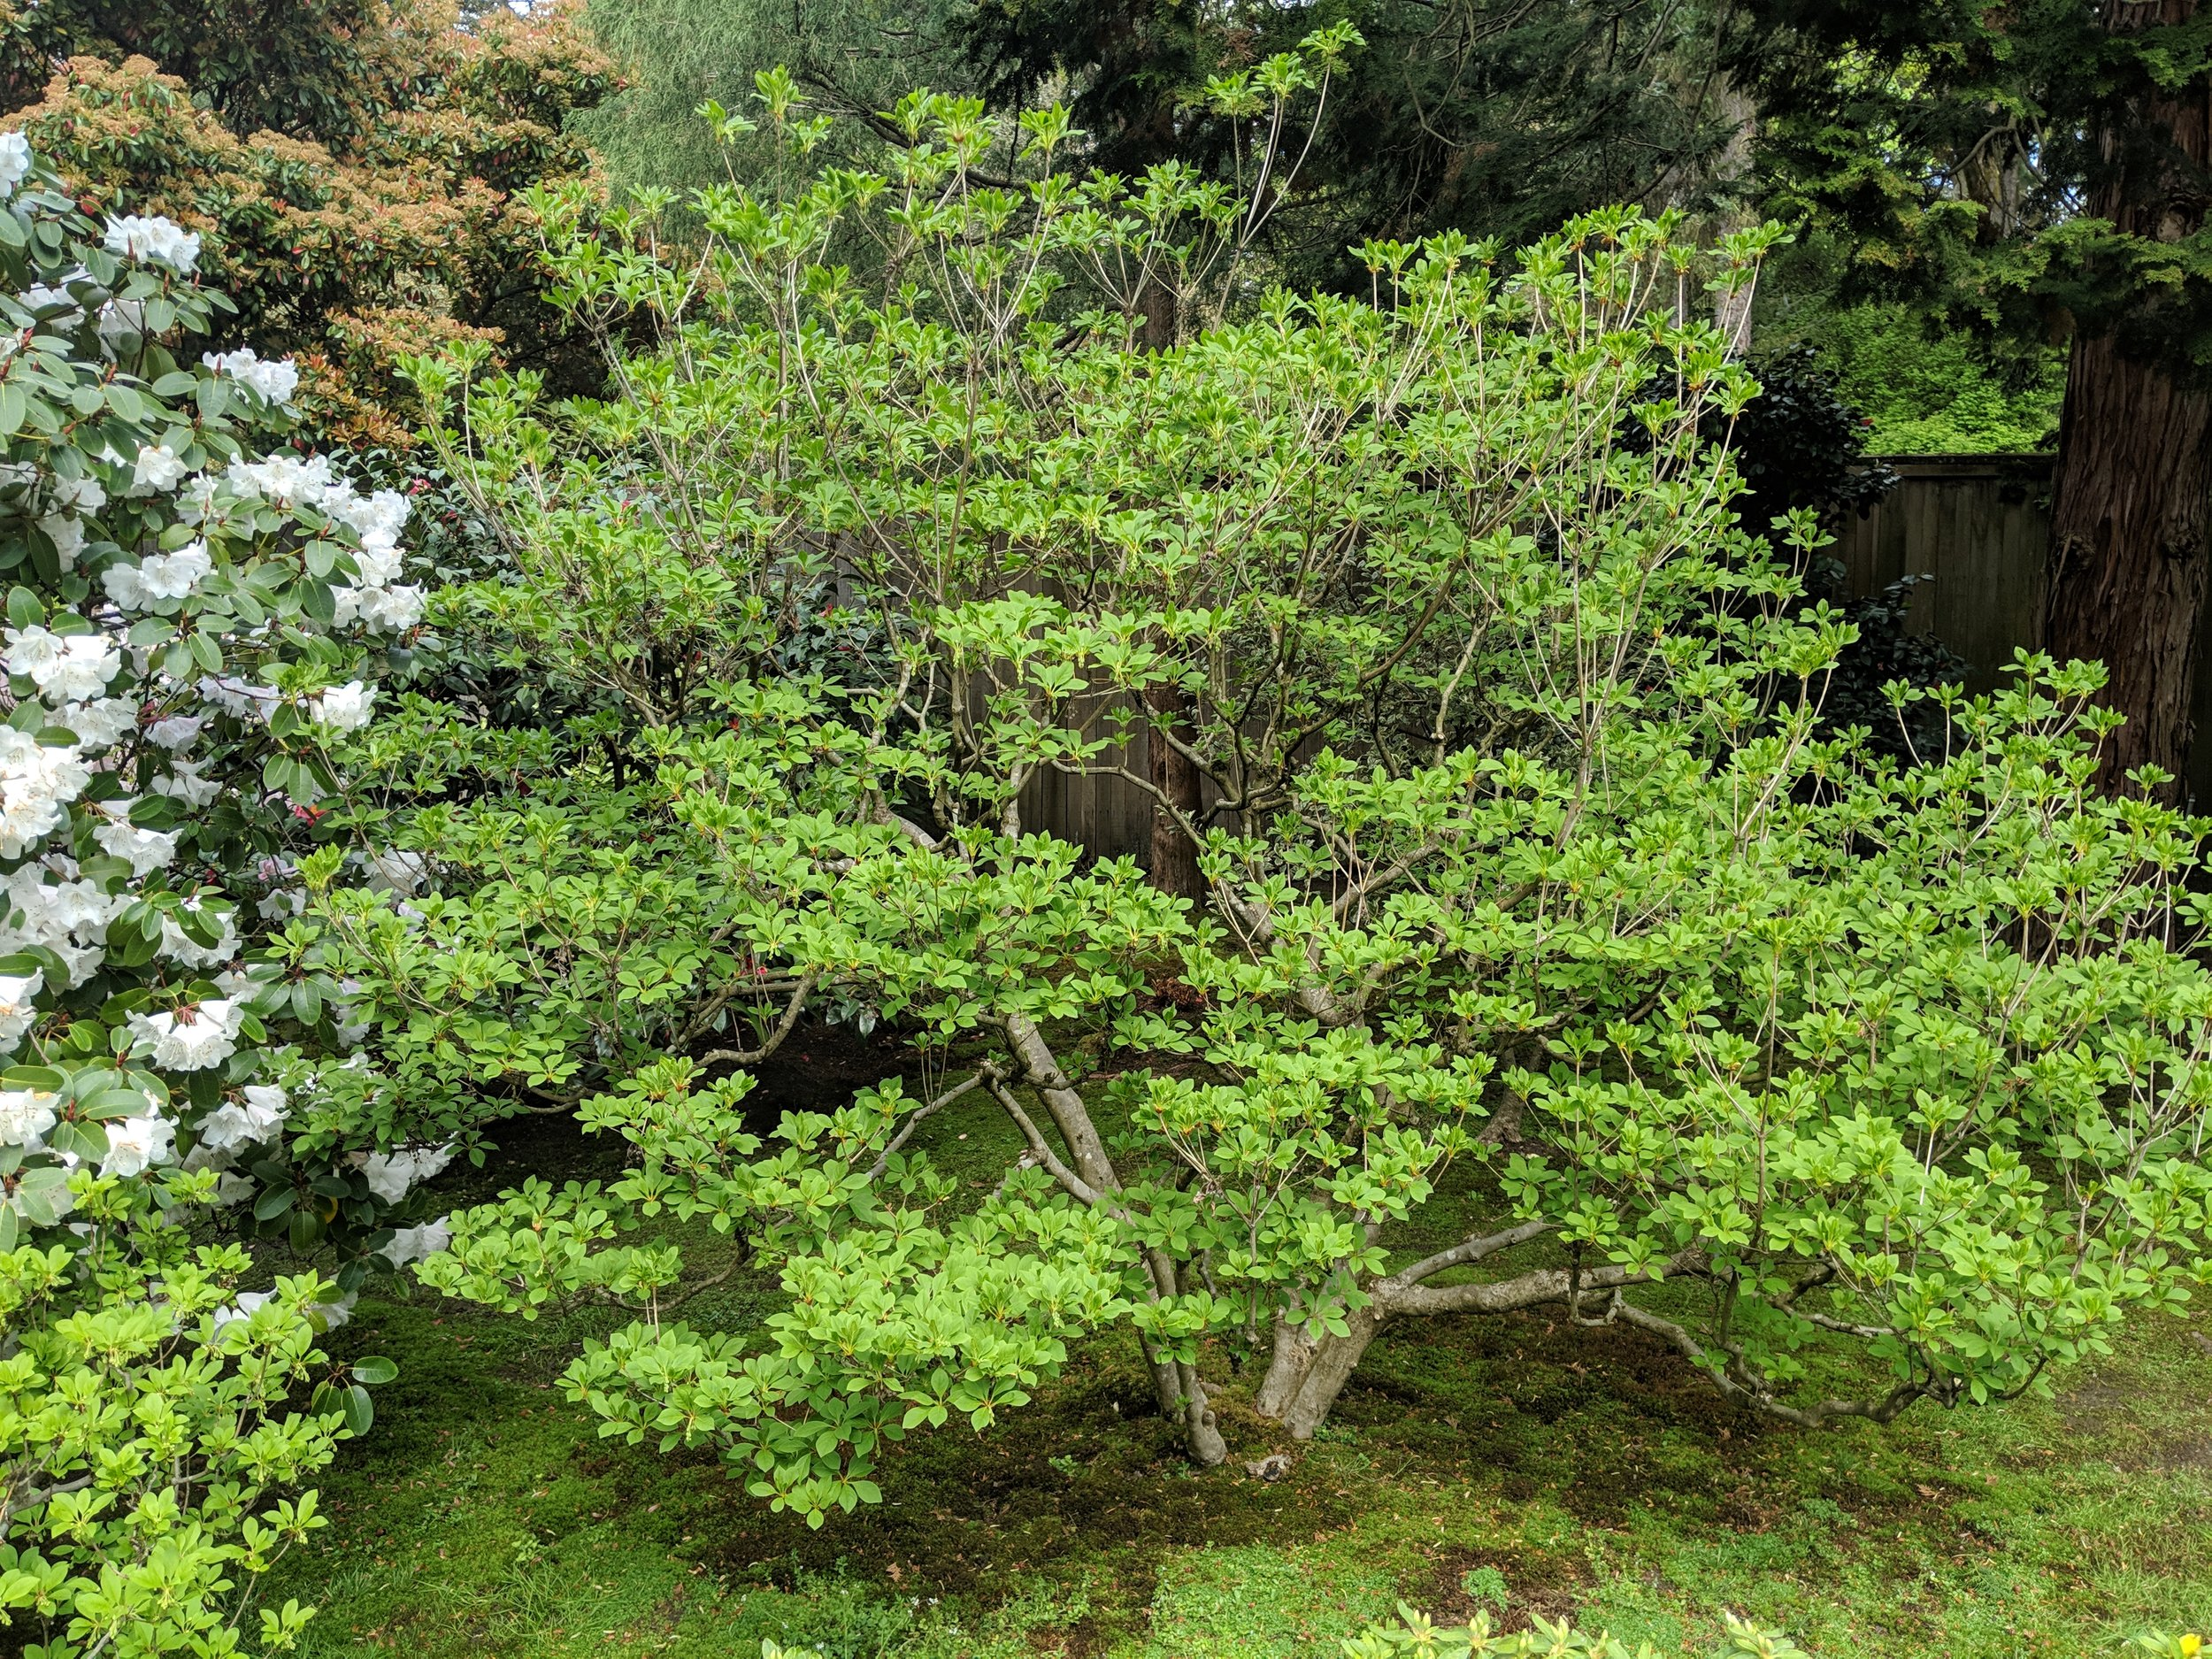 Redvein enkianthus in our garden, before the flowers open. (photo: Corinne Kennedy)